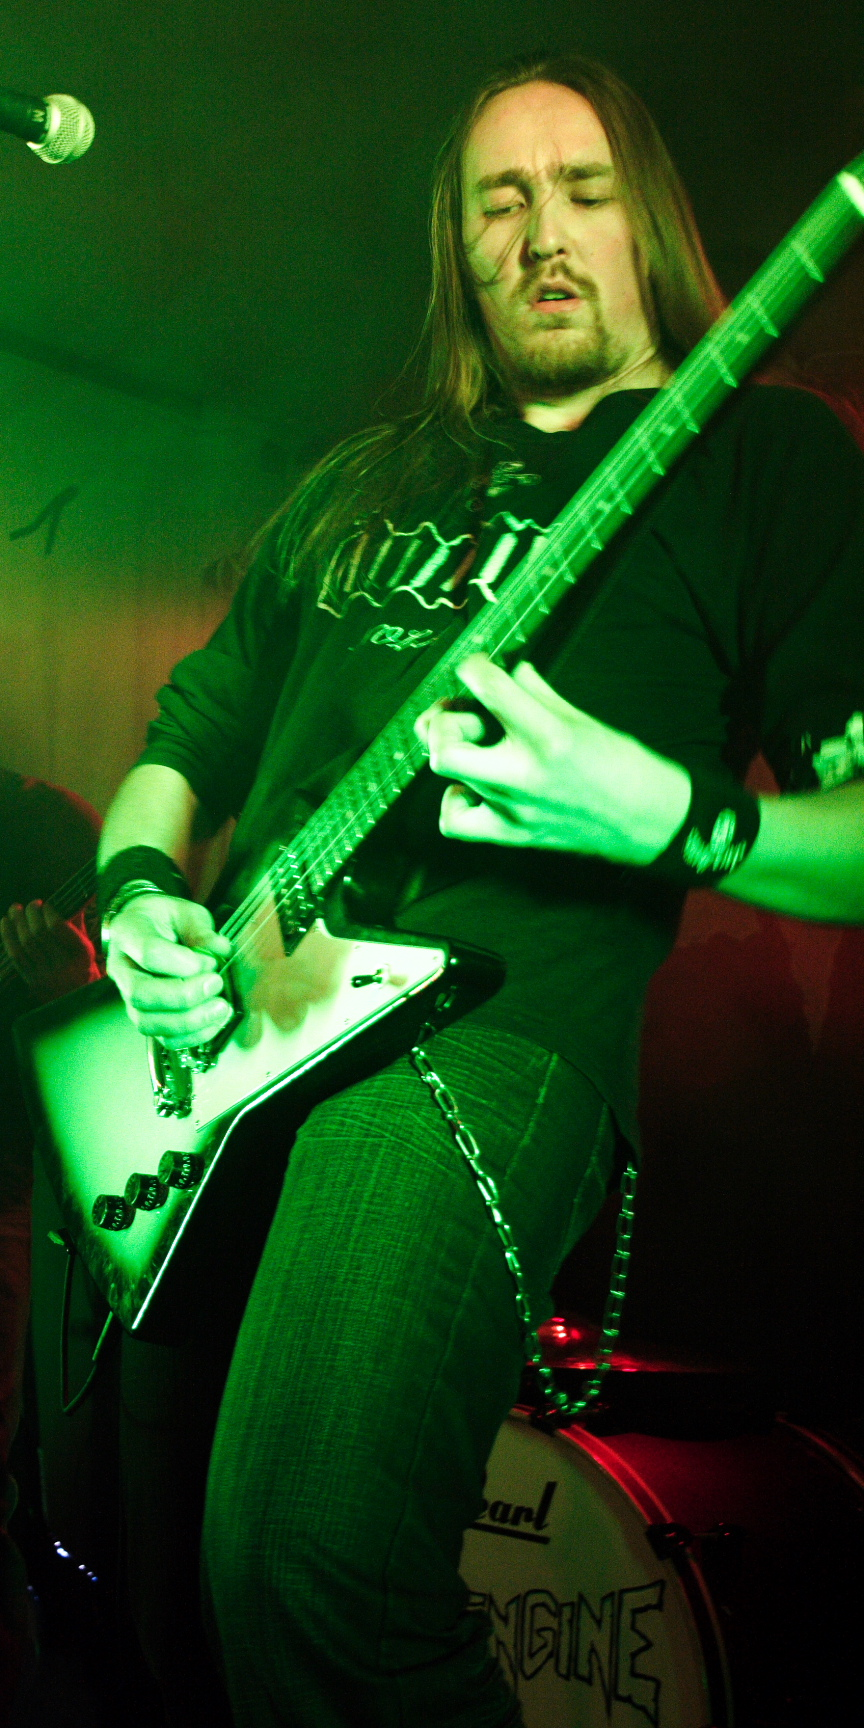 antti-uses_gibson_sm